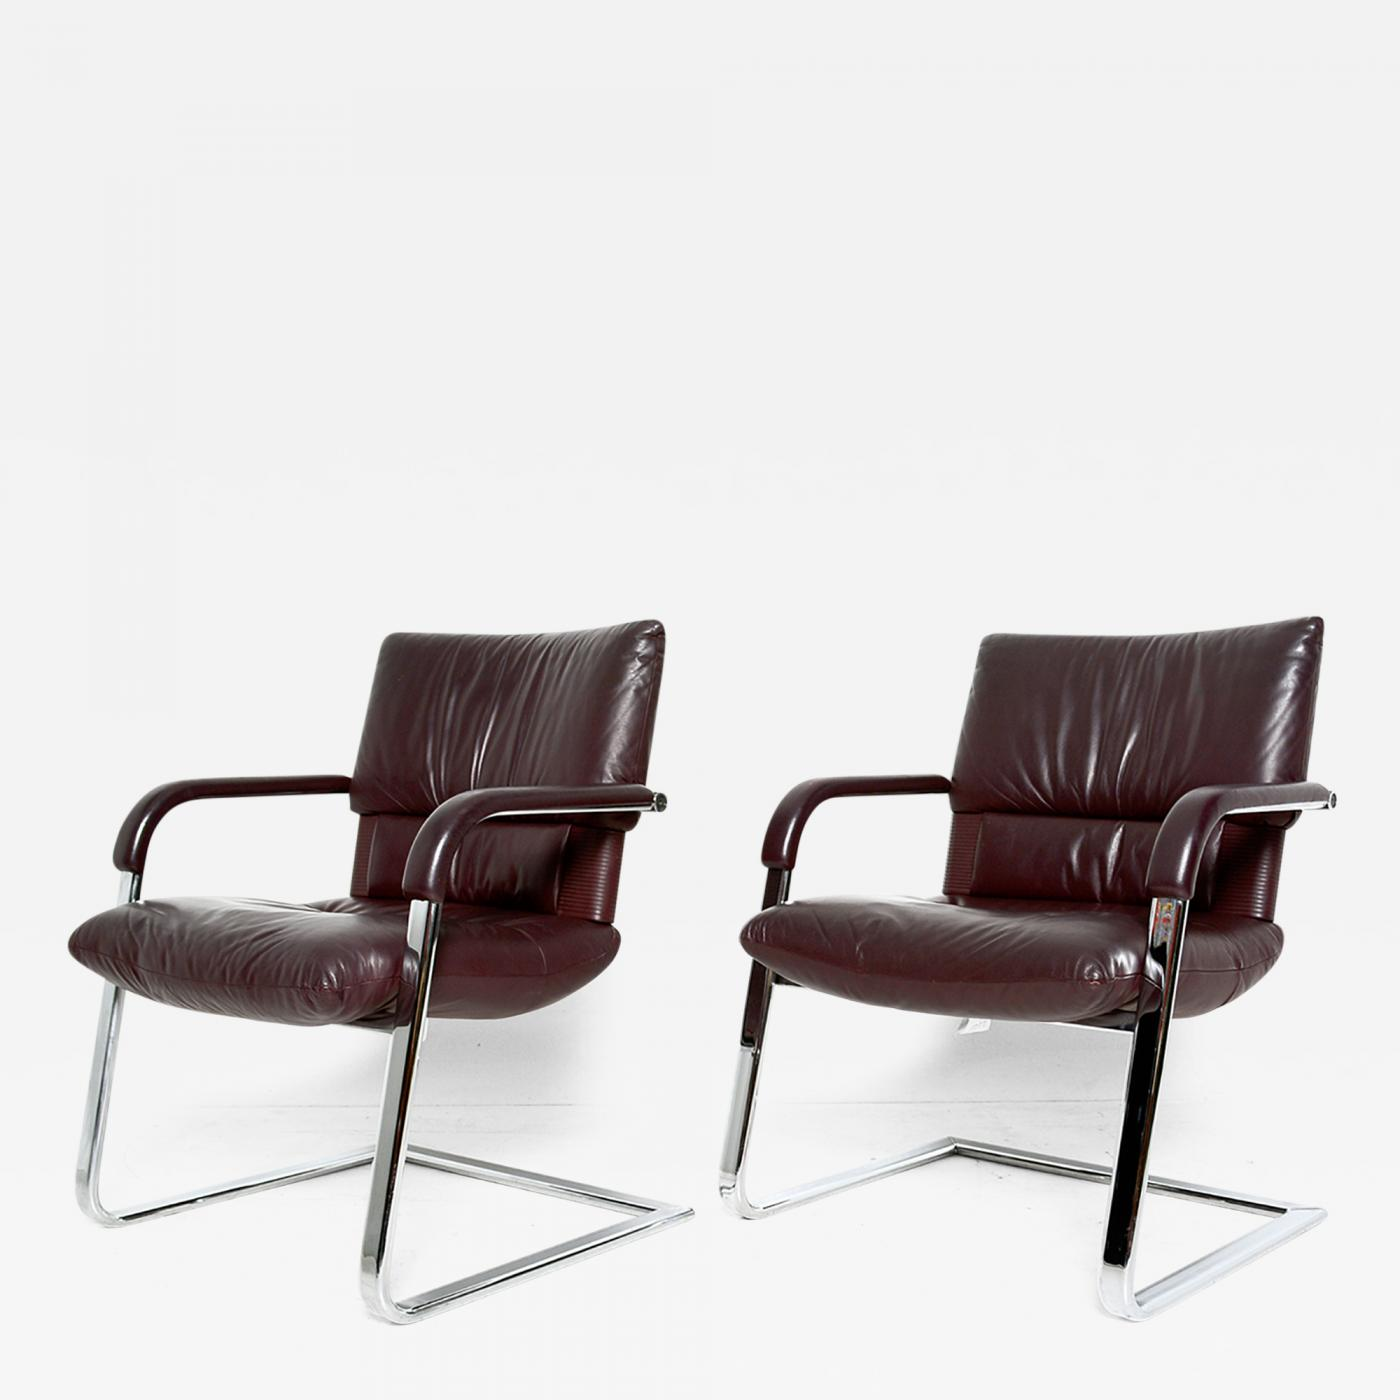 Mario Bellini Pair of Imago Chairs by Mario Bellini for Vitra